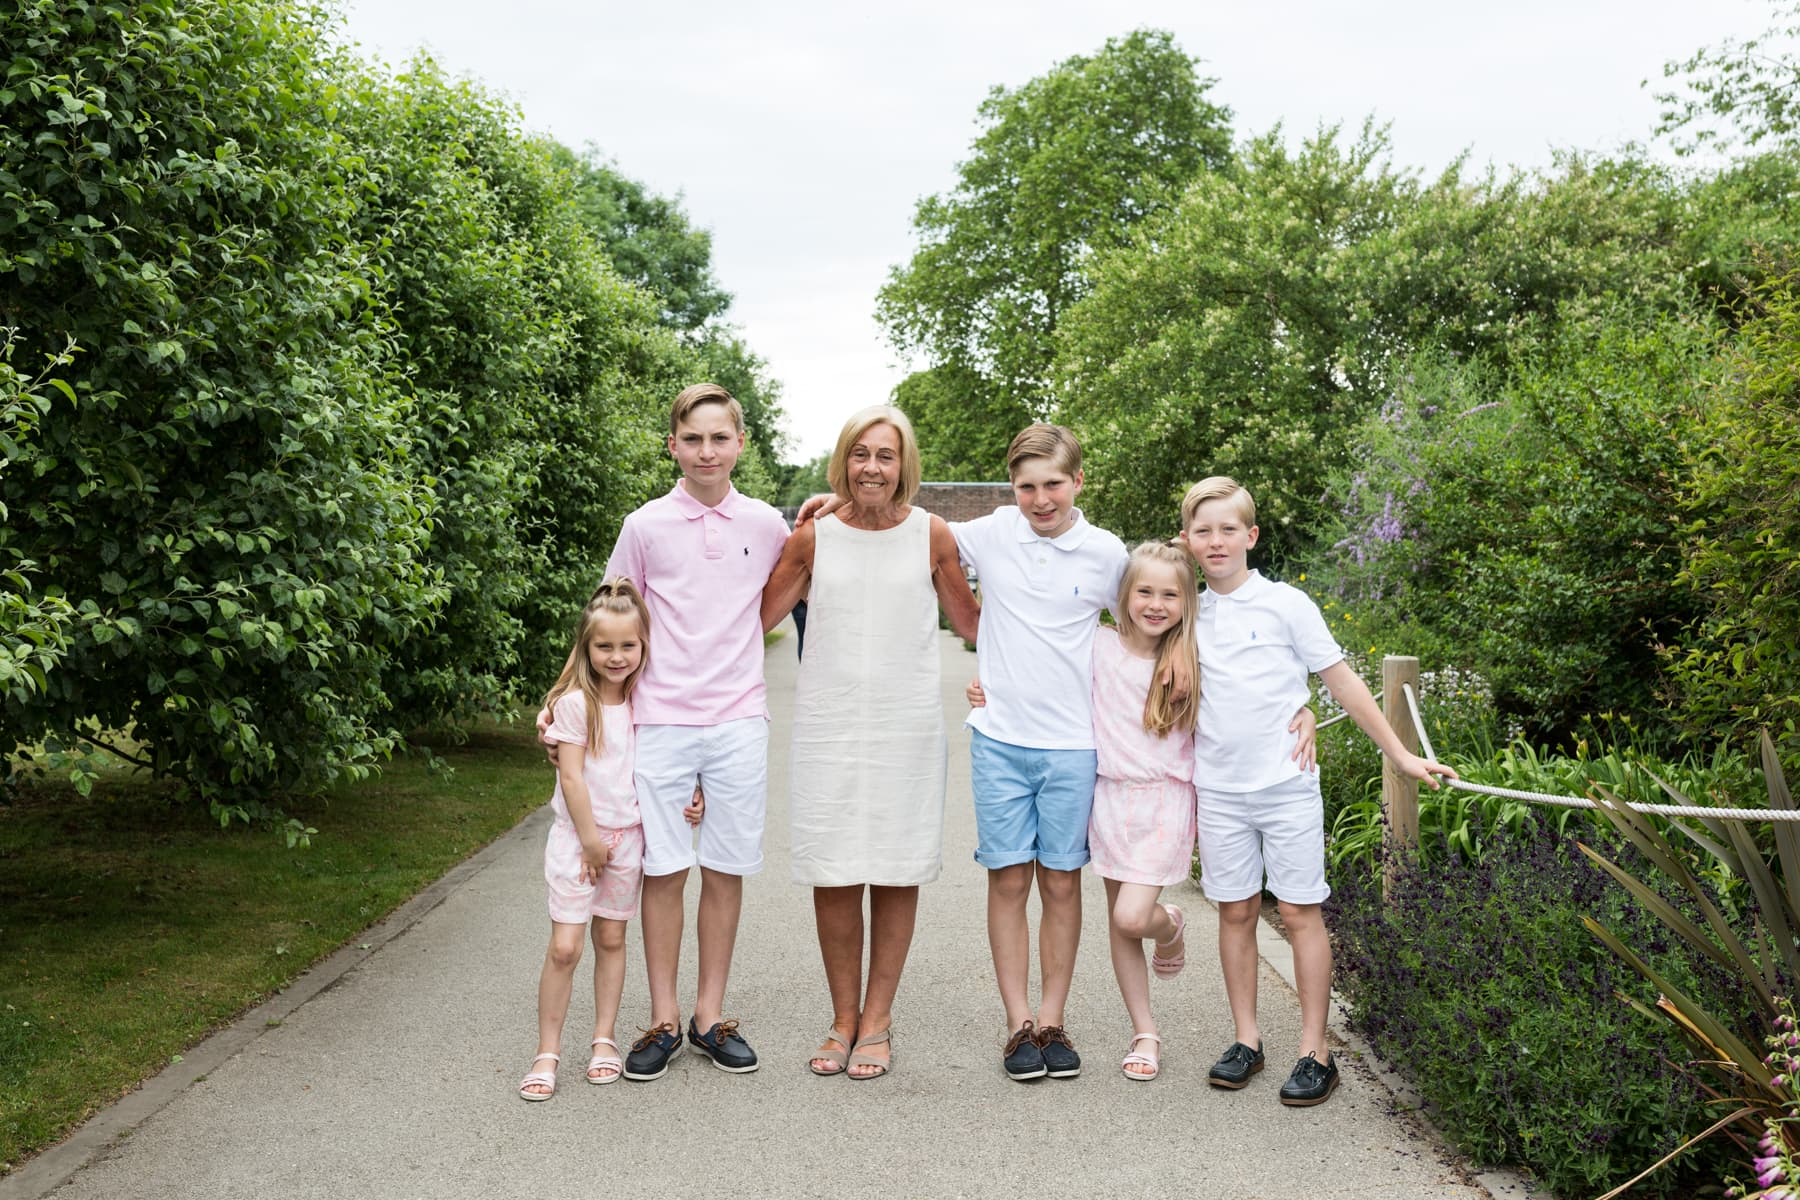 Nana and 4 grandchildren standing between trees at their Bexley extended family photoshoot